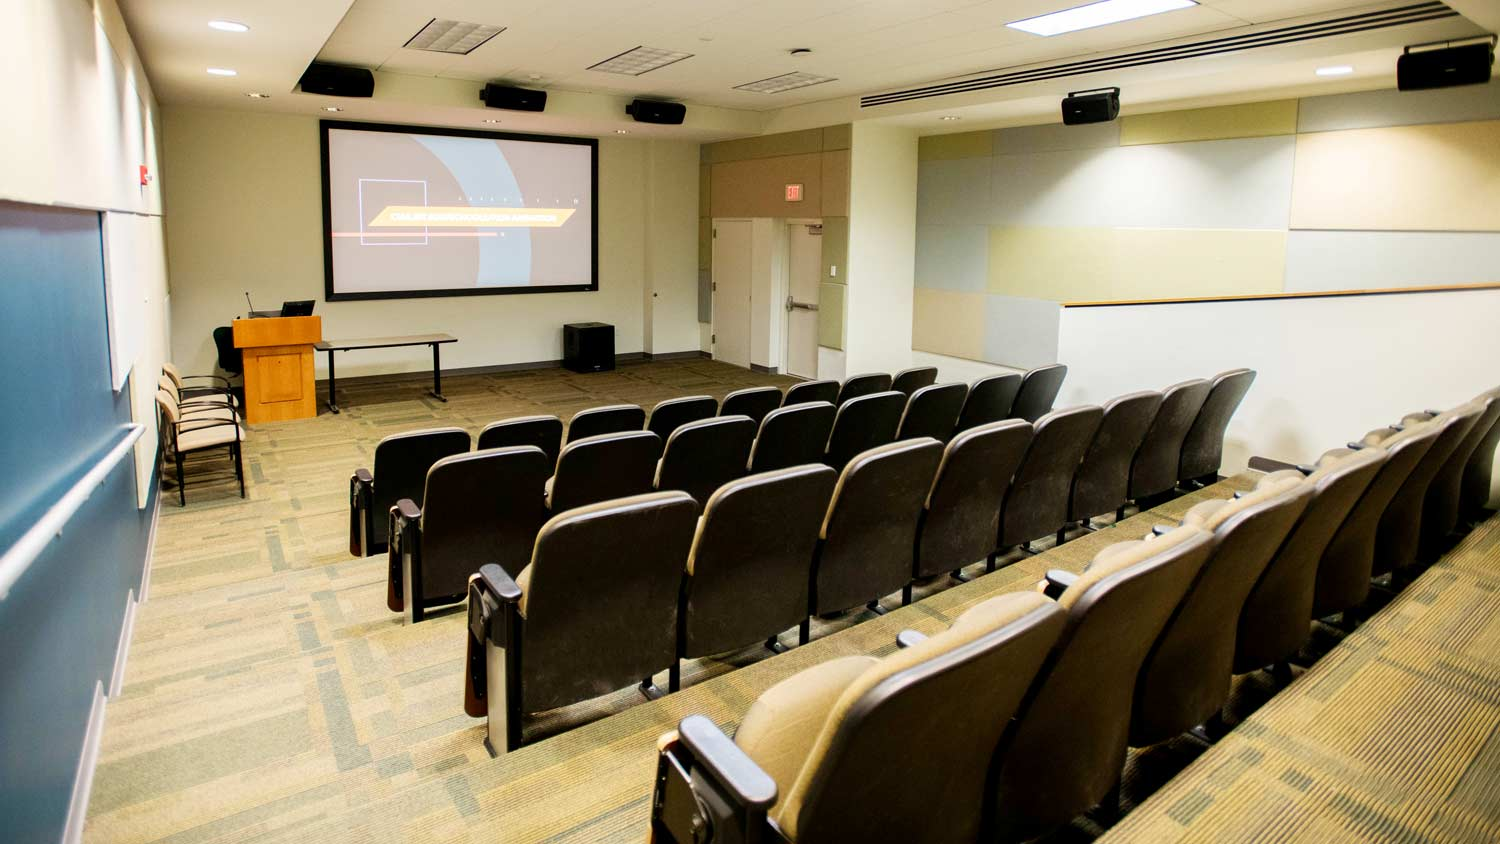 Classroom with stadium seating and a large projector